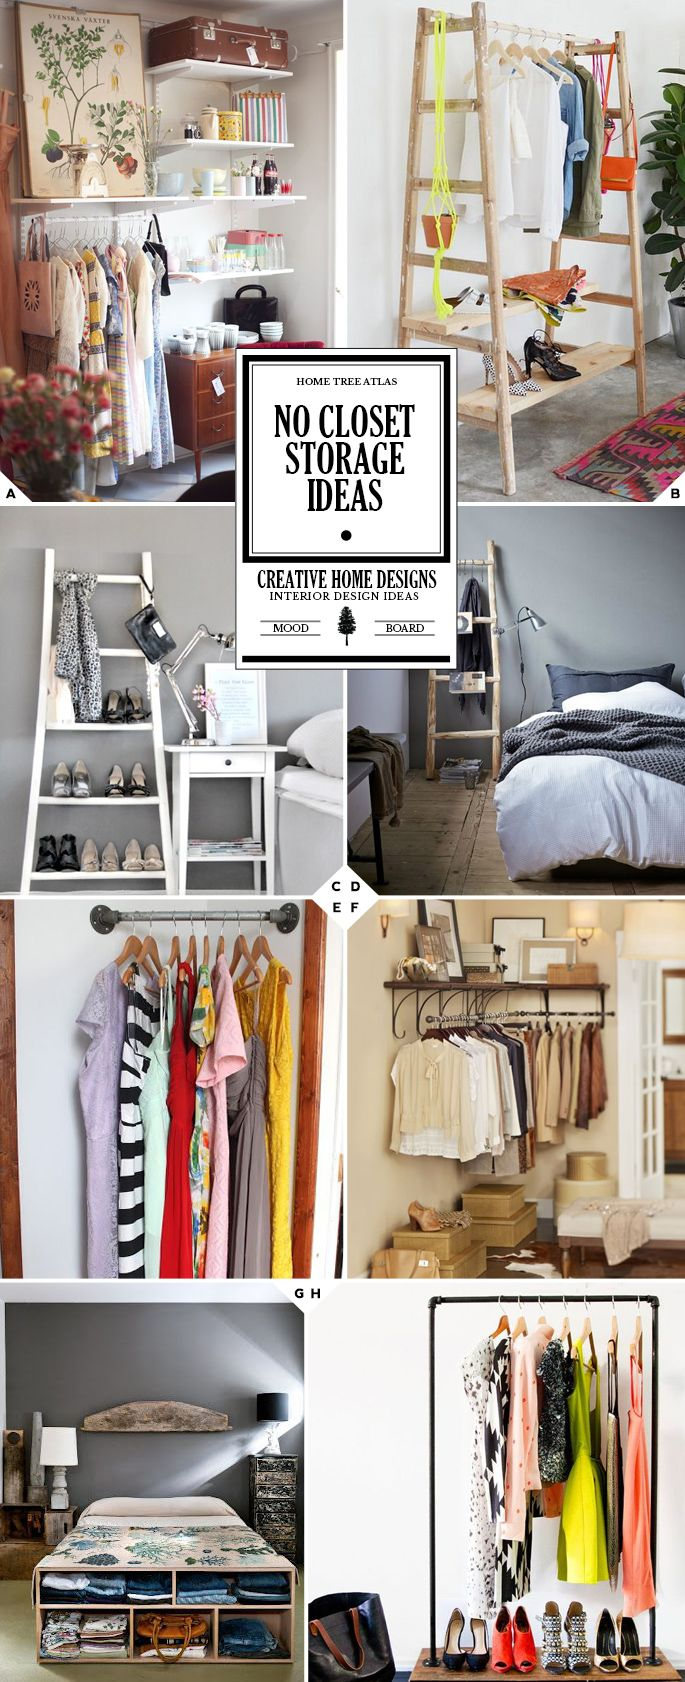 Organize Your Clothes 10 Creative And Effective Ways To Store And Hang Your Clothes: Best 20+ No Closet Solutions Ideas On Pinterest